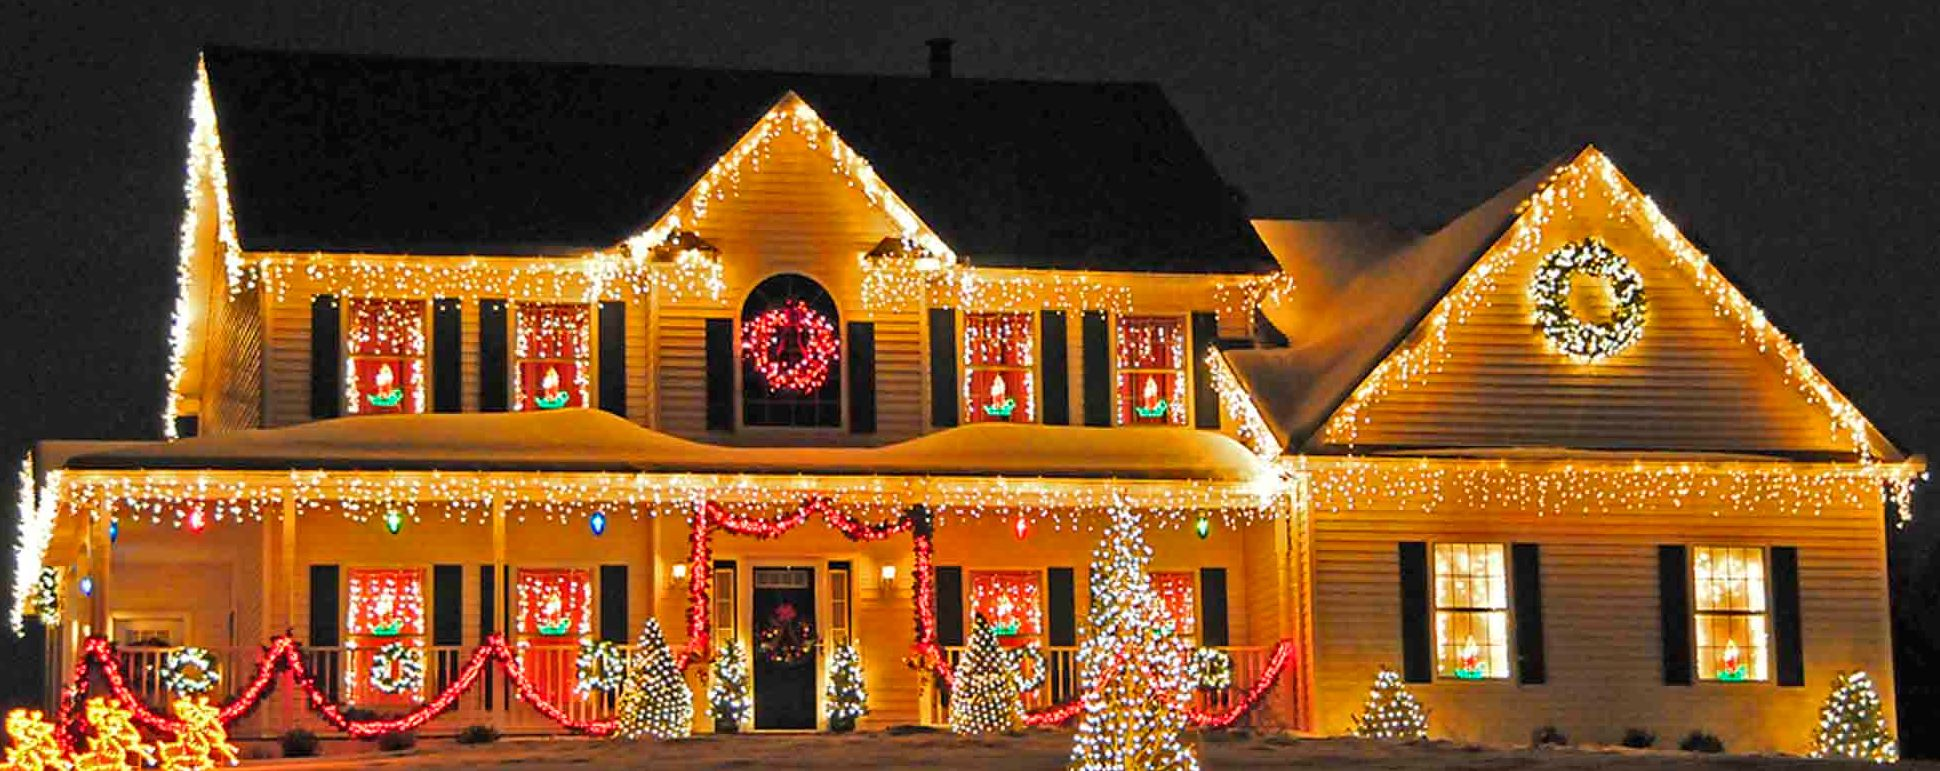 Clipart outdoor christmas lights.